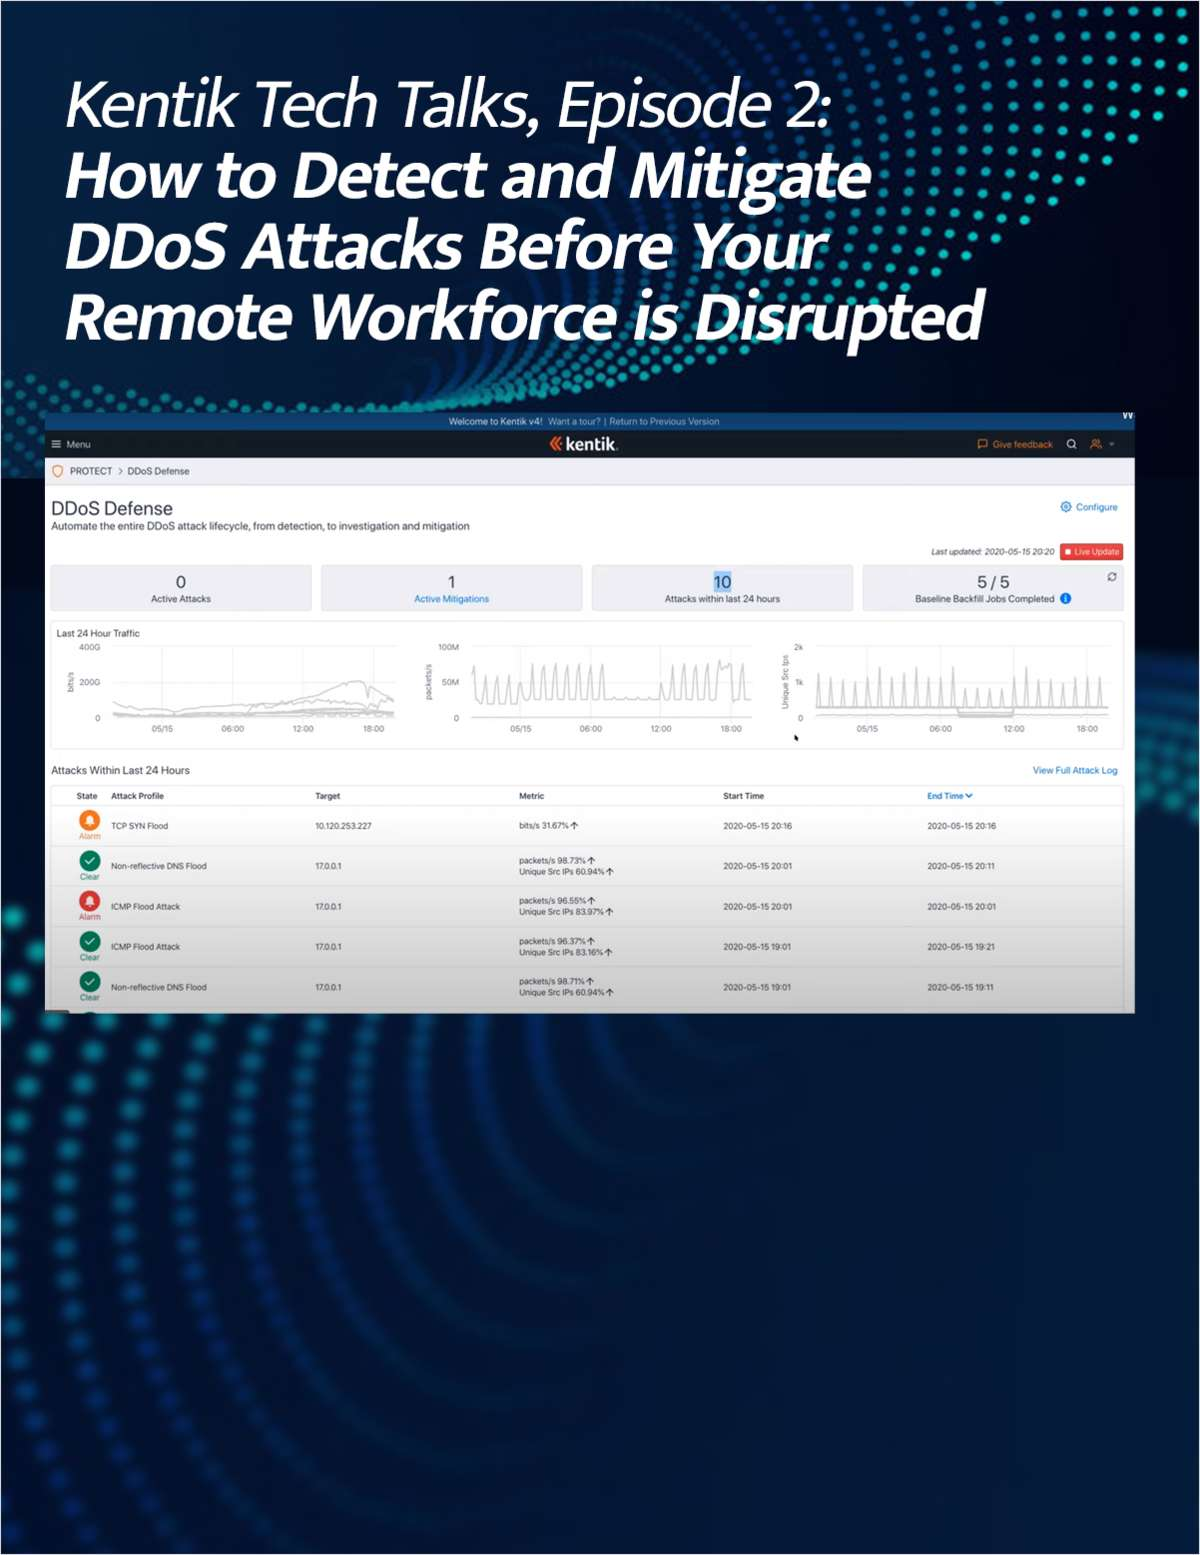 How to Detect and Mitigate DDoS Attacks Before Your Remote Workforce is Disrupted